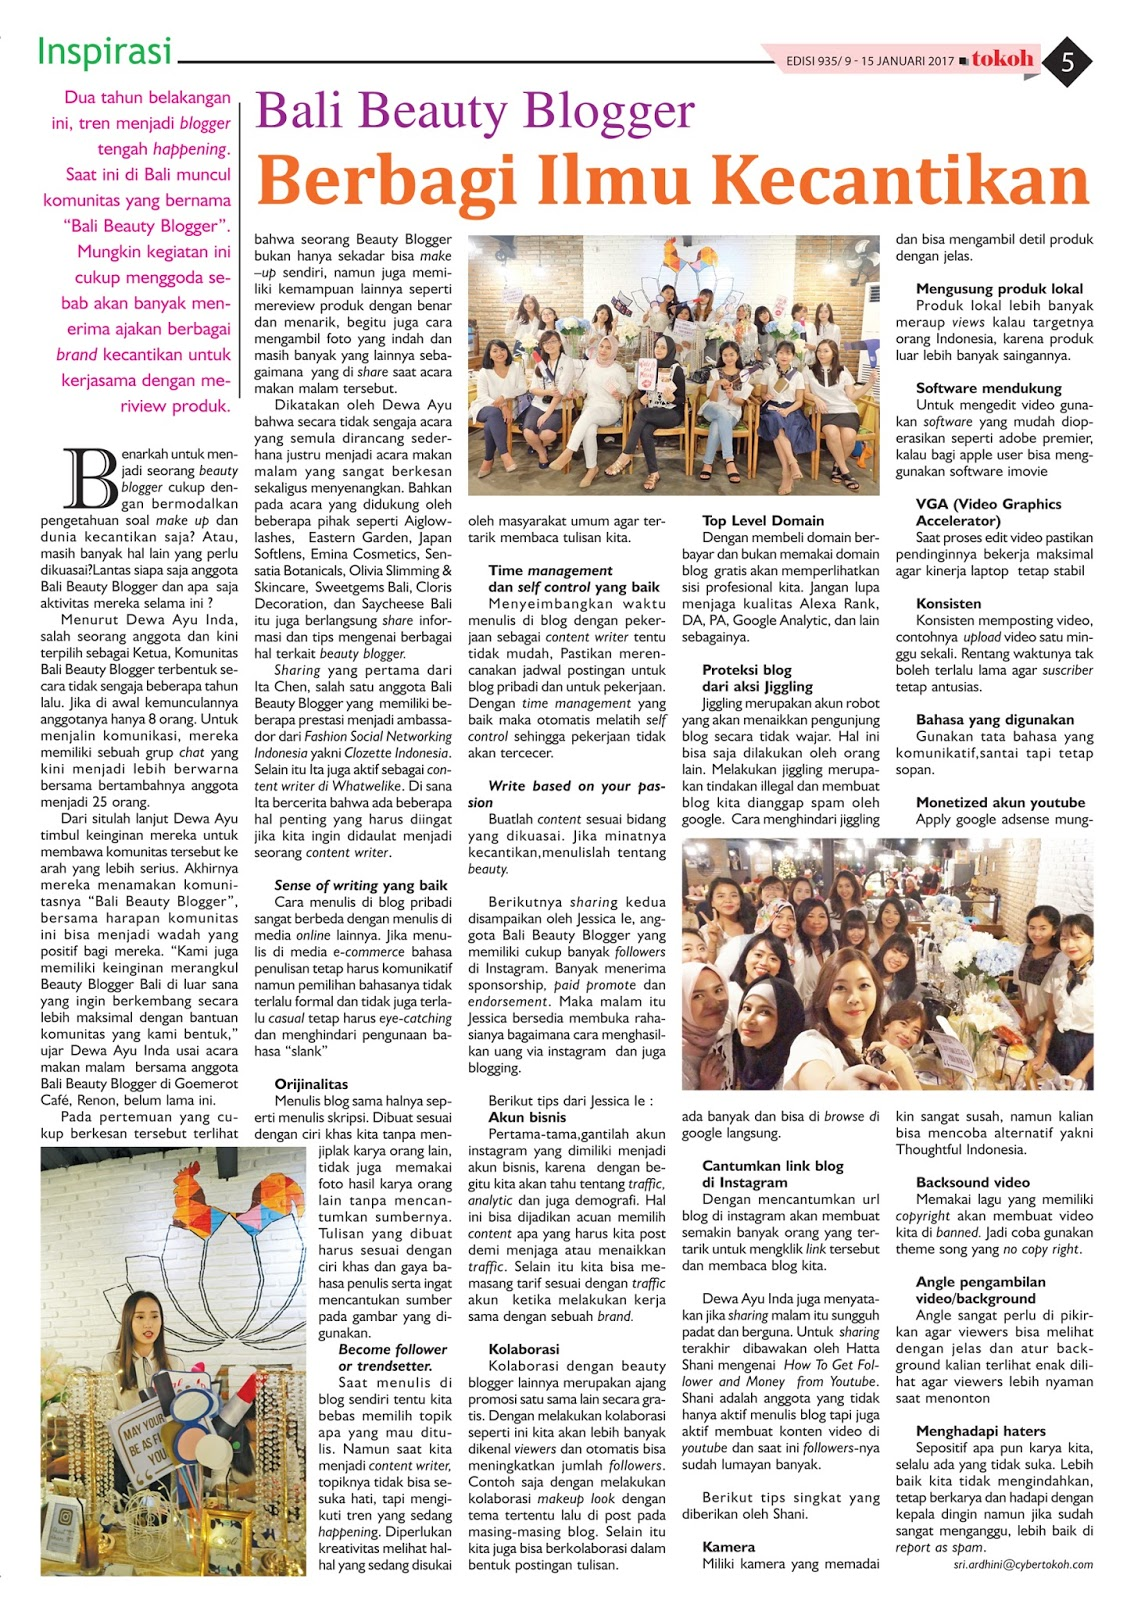 BALI BEAUTY BLOGGER FEATURED WITH TOKOH NEWSPAPER